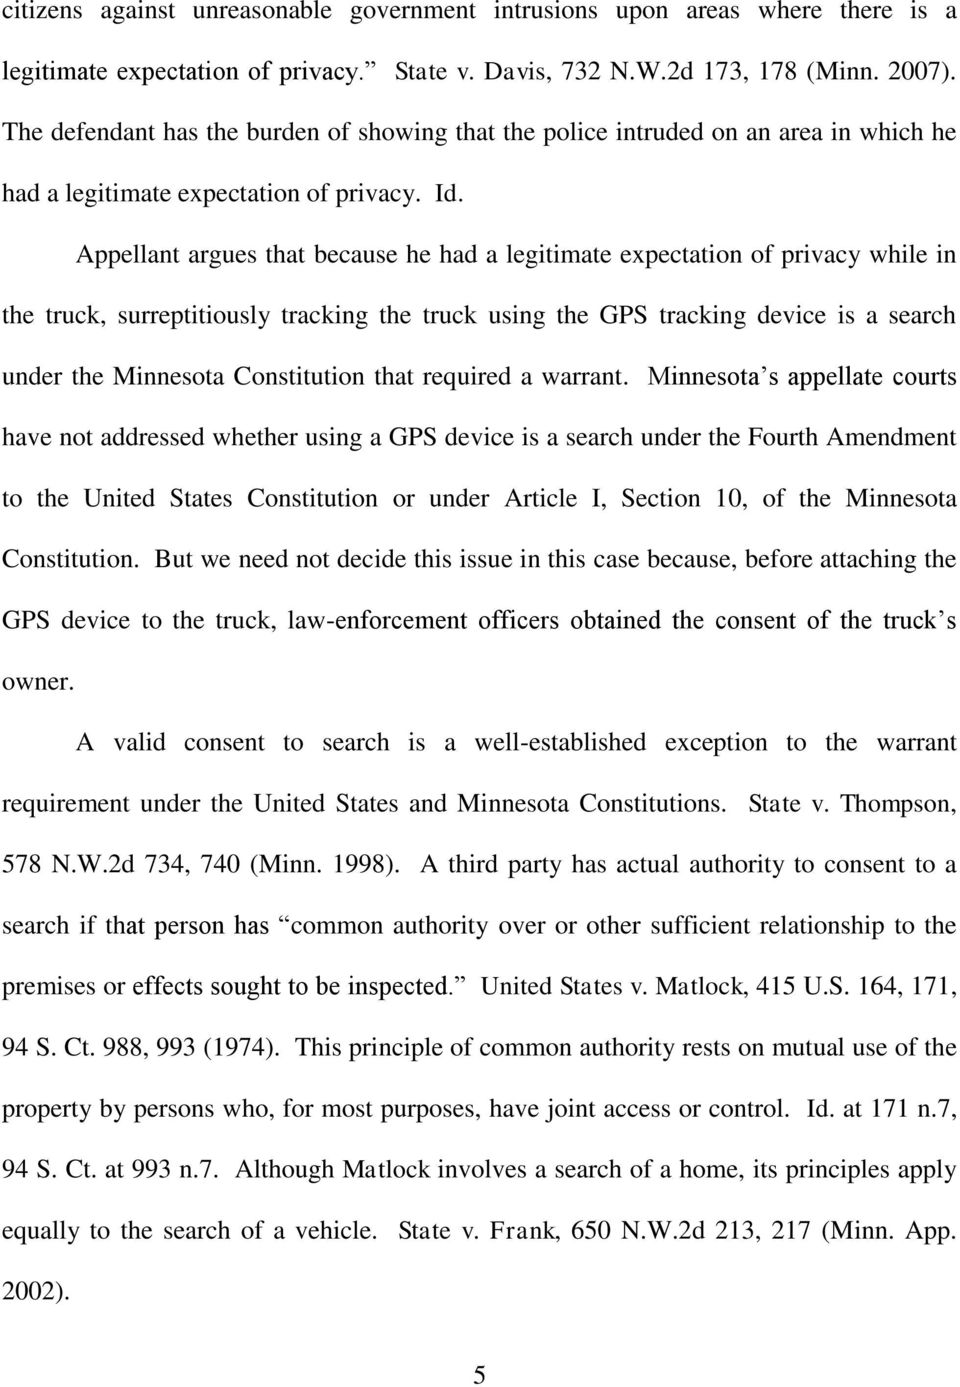 Appellant argues that because he had a legitimate expectation of privacy while in the truck, surreptitiously tracking the truck using the GPS tracking device is a search under the Minnesota